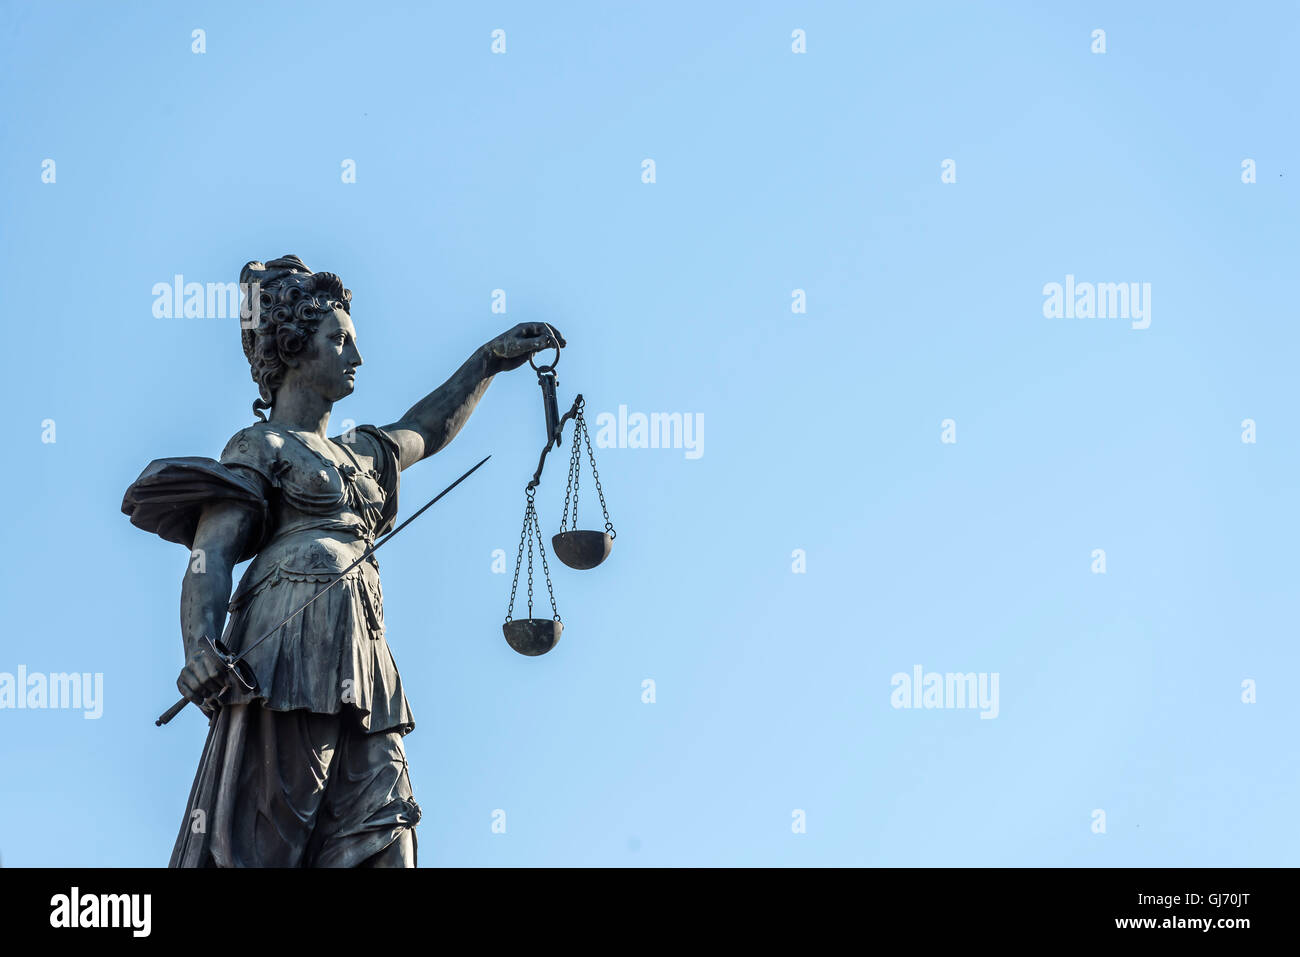 Frankfurt am Main, Hesse, Germany, 'Justitia Statue' at the 'Gerchtigkeitsbrunnen' (fountain) at - Stock Image